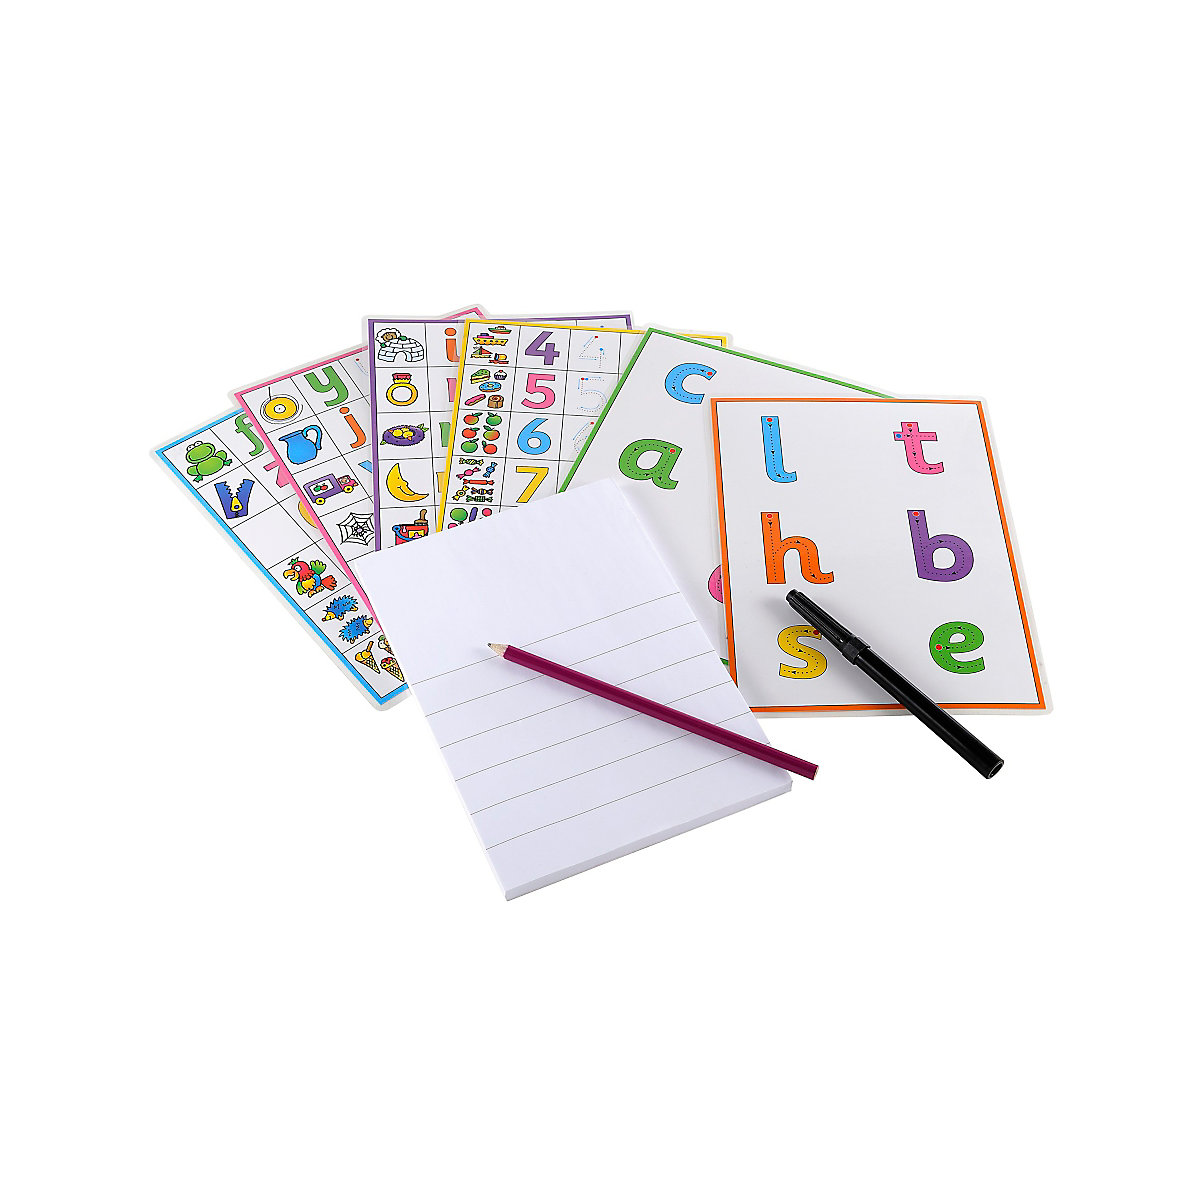 New ELC Boys and Girls Fun To Write Toy From 3 years - Toy Gifts